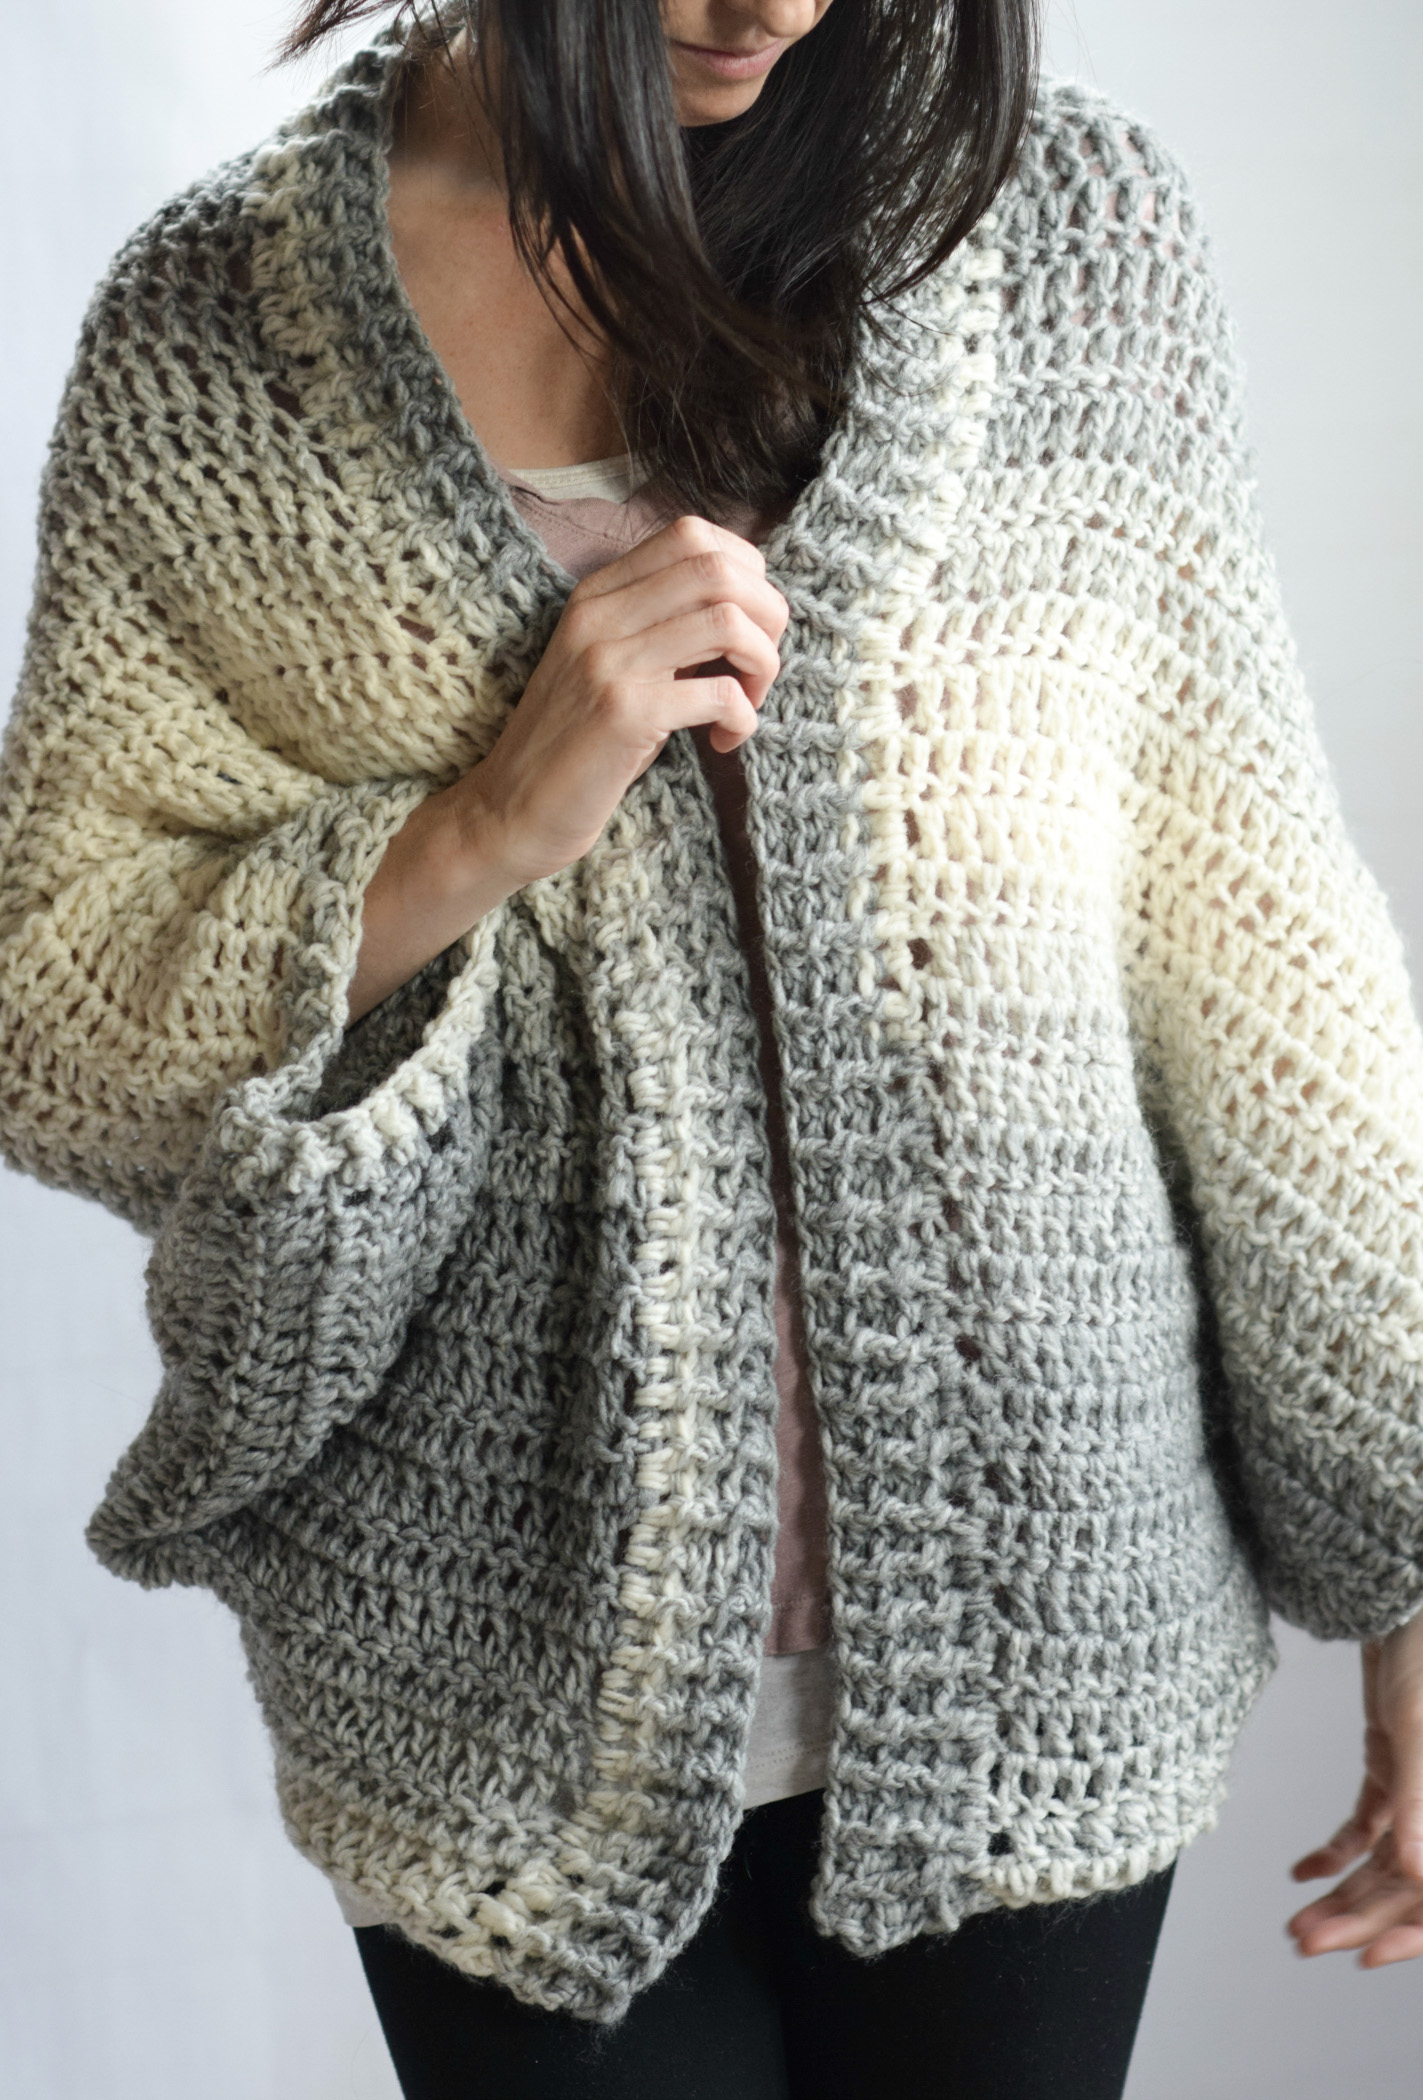 Free Knitting Patterns For Shrugs And Wraps Done In A Day Quick Shrug Crochet Pattern Mama In A Stitch